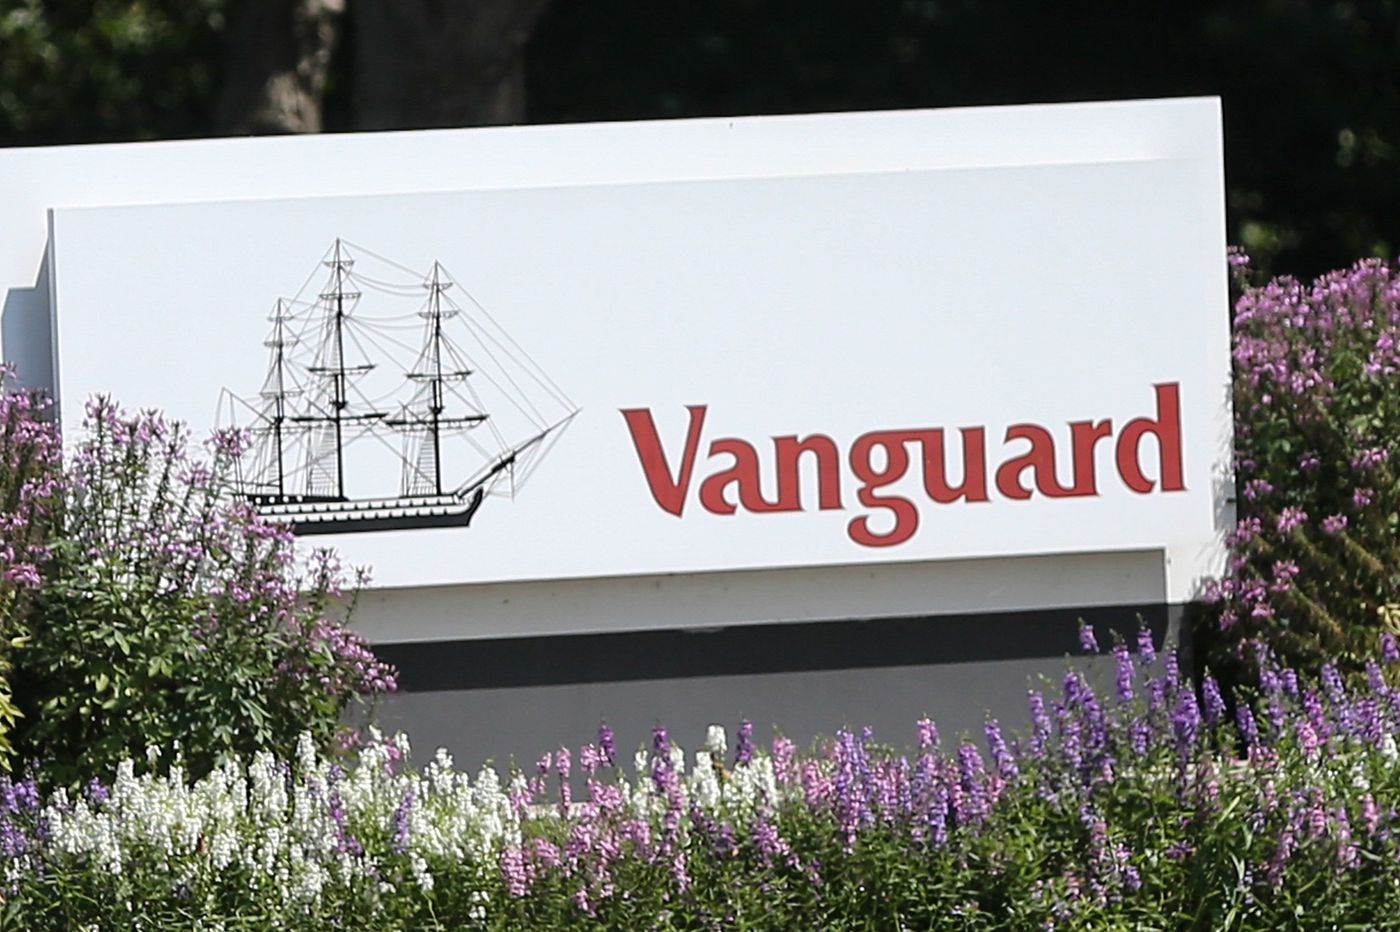 Vanguard Considering Private Equity for the very wealthy: WSJ